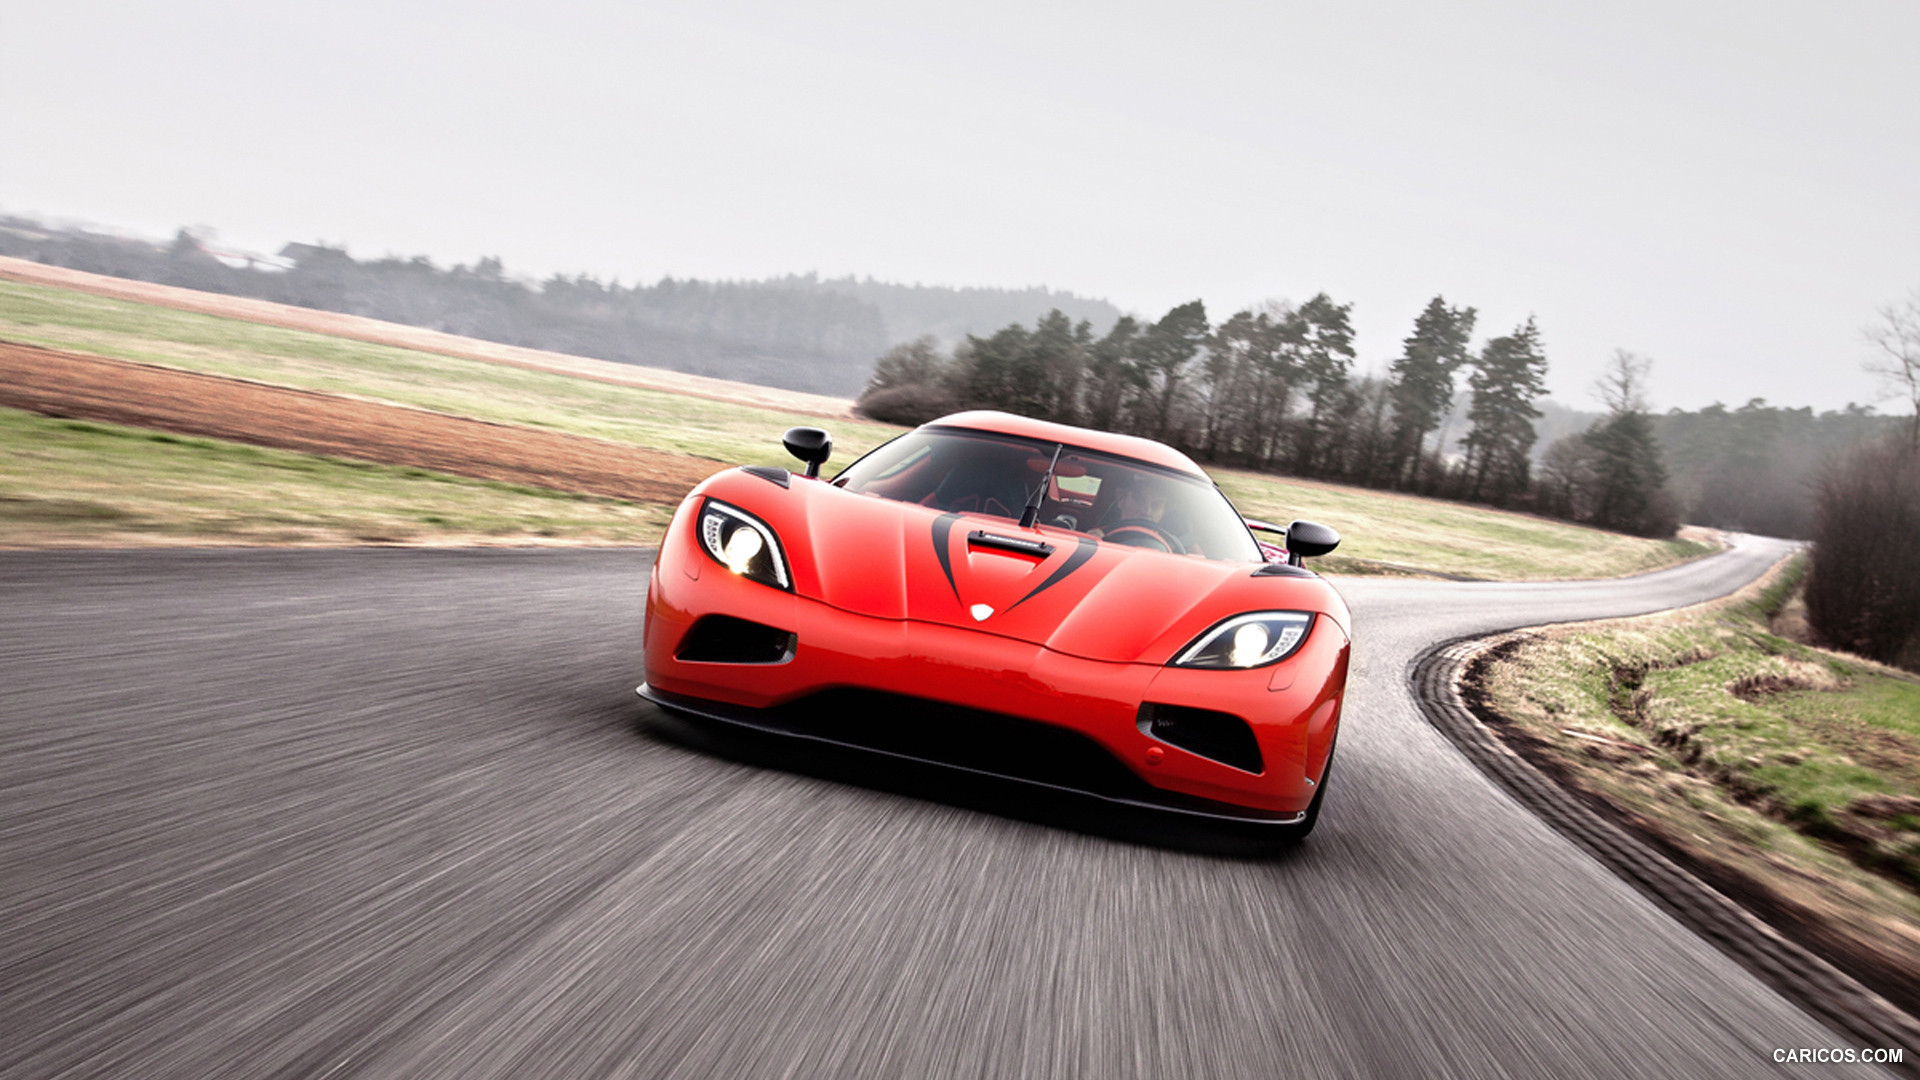 1920x1080 Download Koenigsegg Agera R HD:51-NEO Pictures, 7.TH Wallpapers